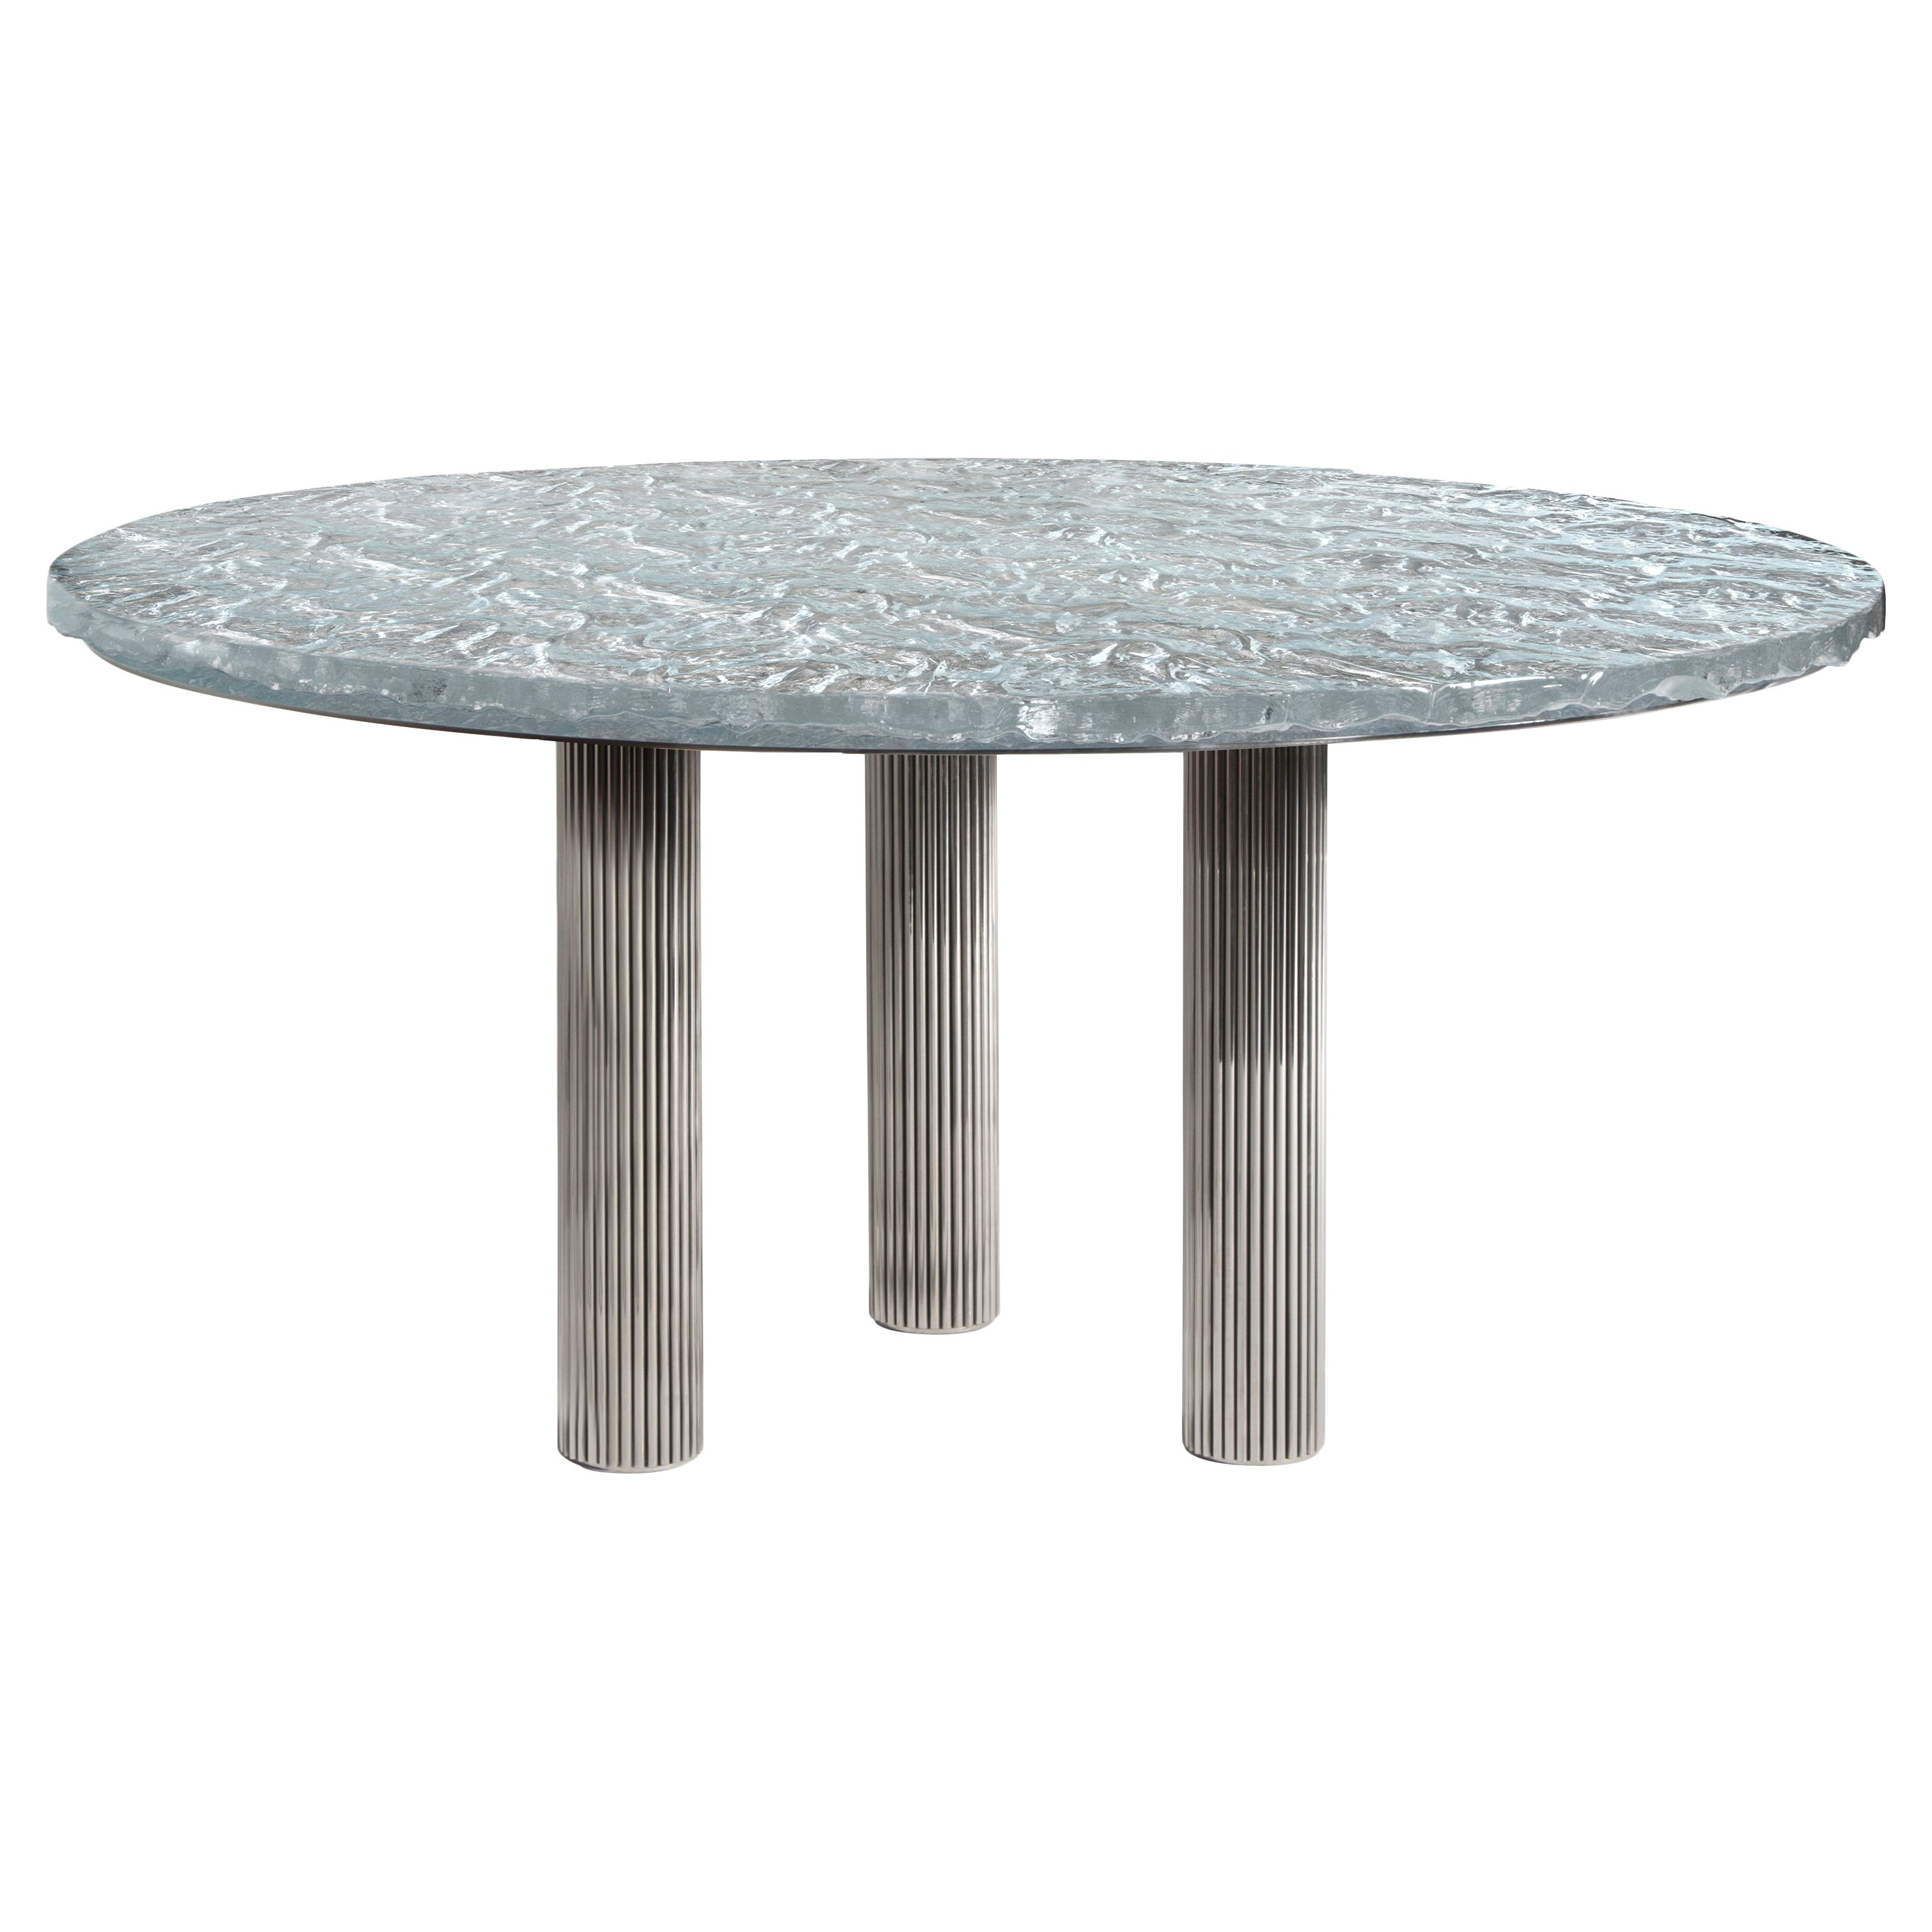 Contemporary Round Table by Hessentia with Artistic Glass Top and Metal Base